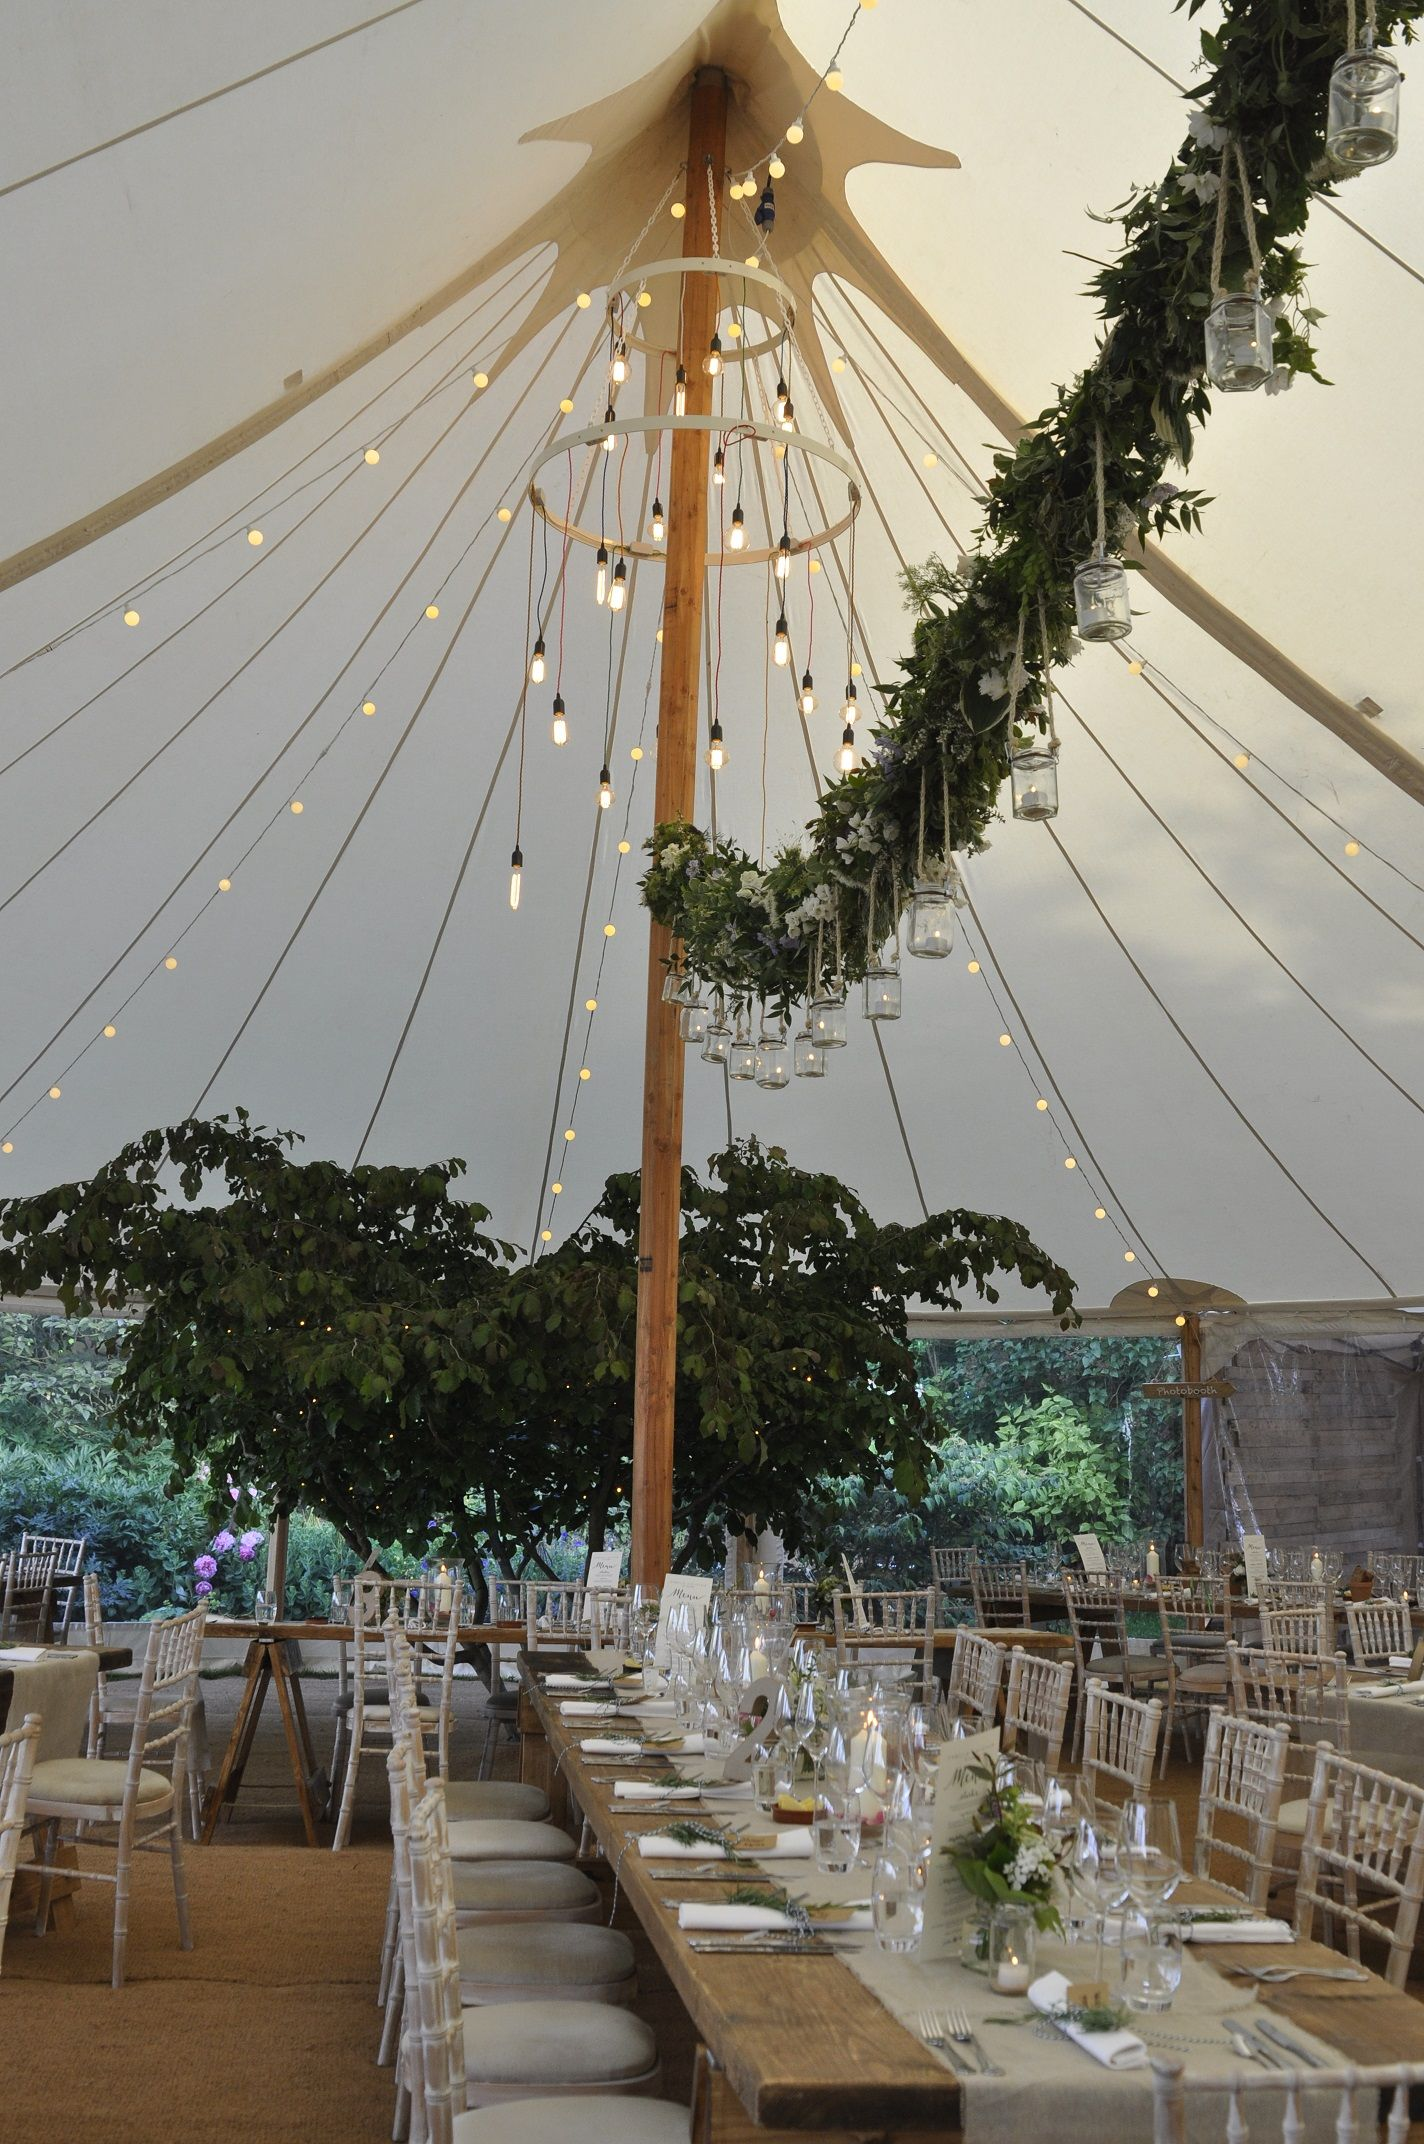 Stunning Interior In A Canvas Wooden Pole Marquee Tent Wedding